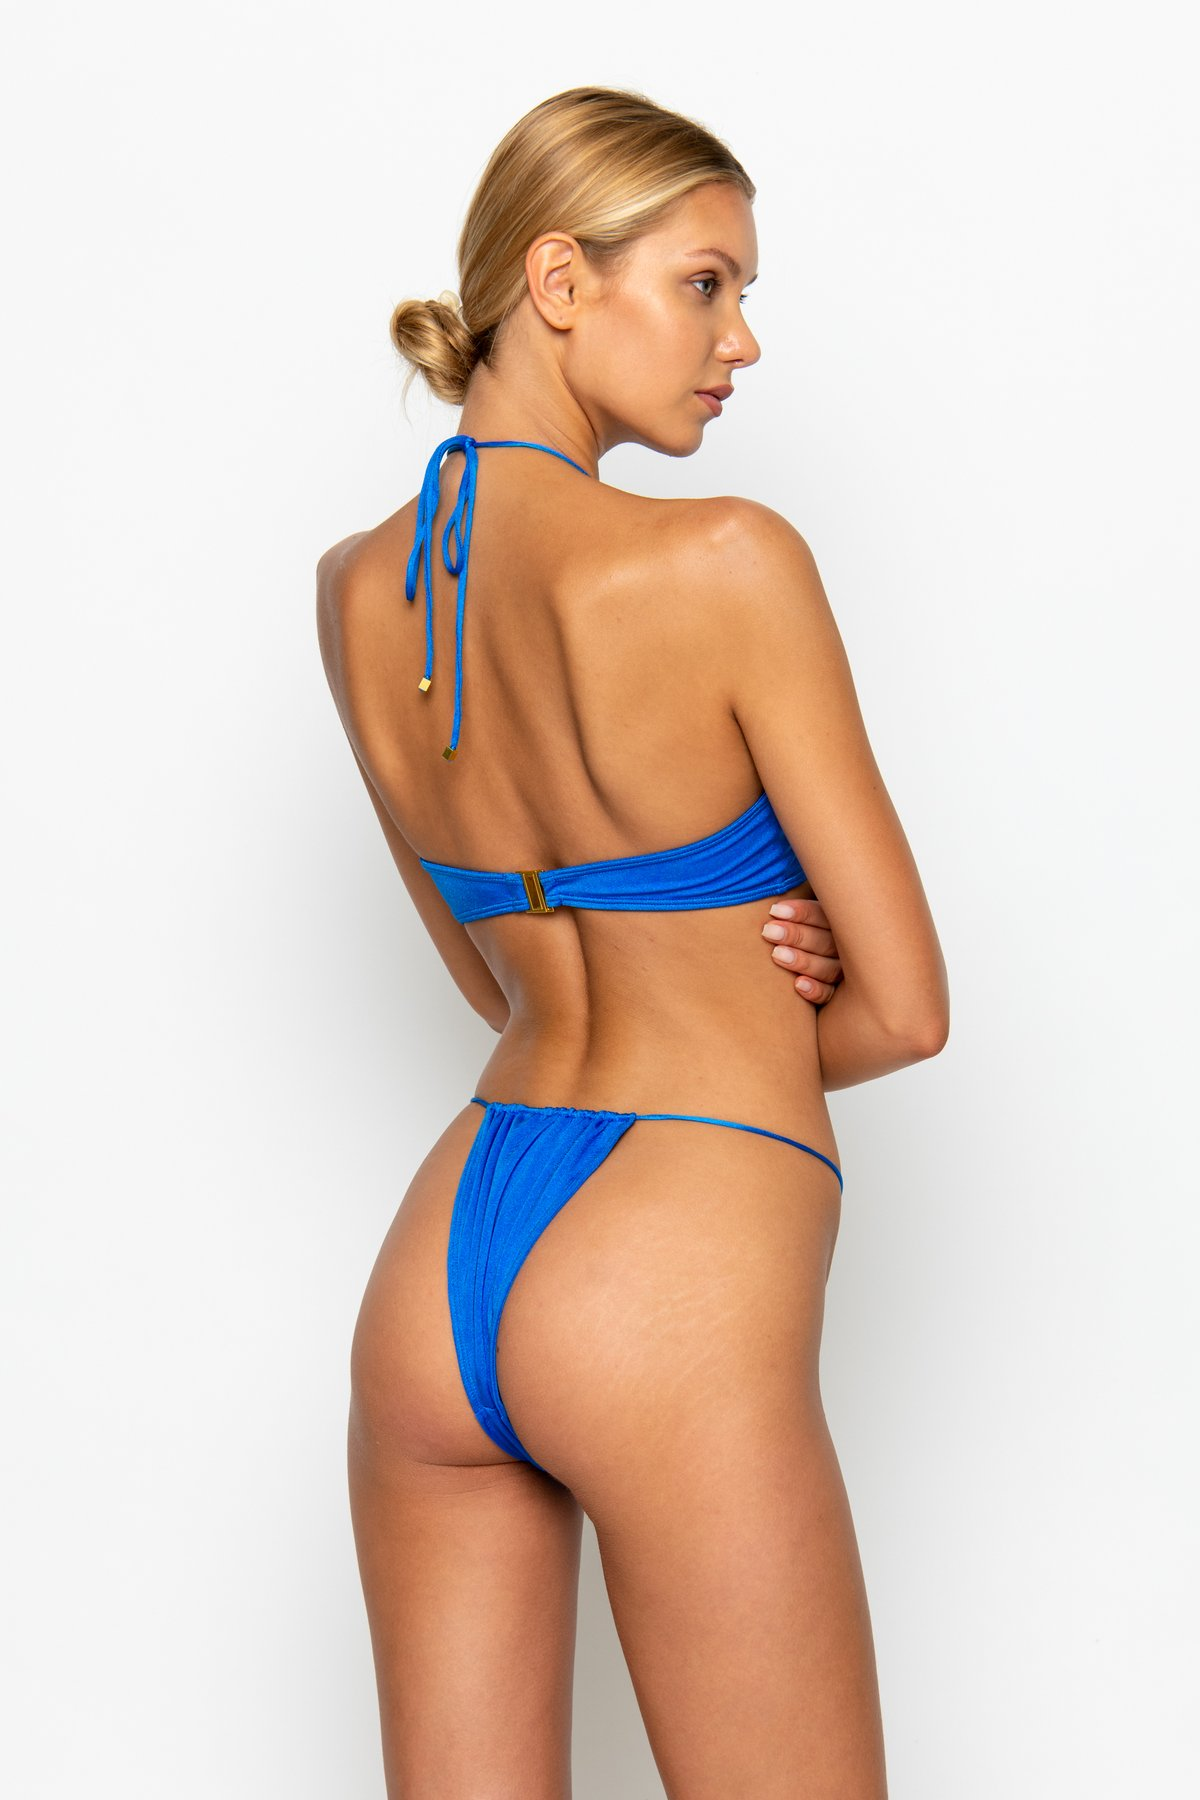 NAOMI SIRIUS - TIE SIDE BIKINI BOTTOMS by Sommer Swim, available on sommerswim.com for $69 Kylie Jenner Shorts Exact Product